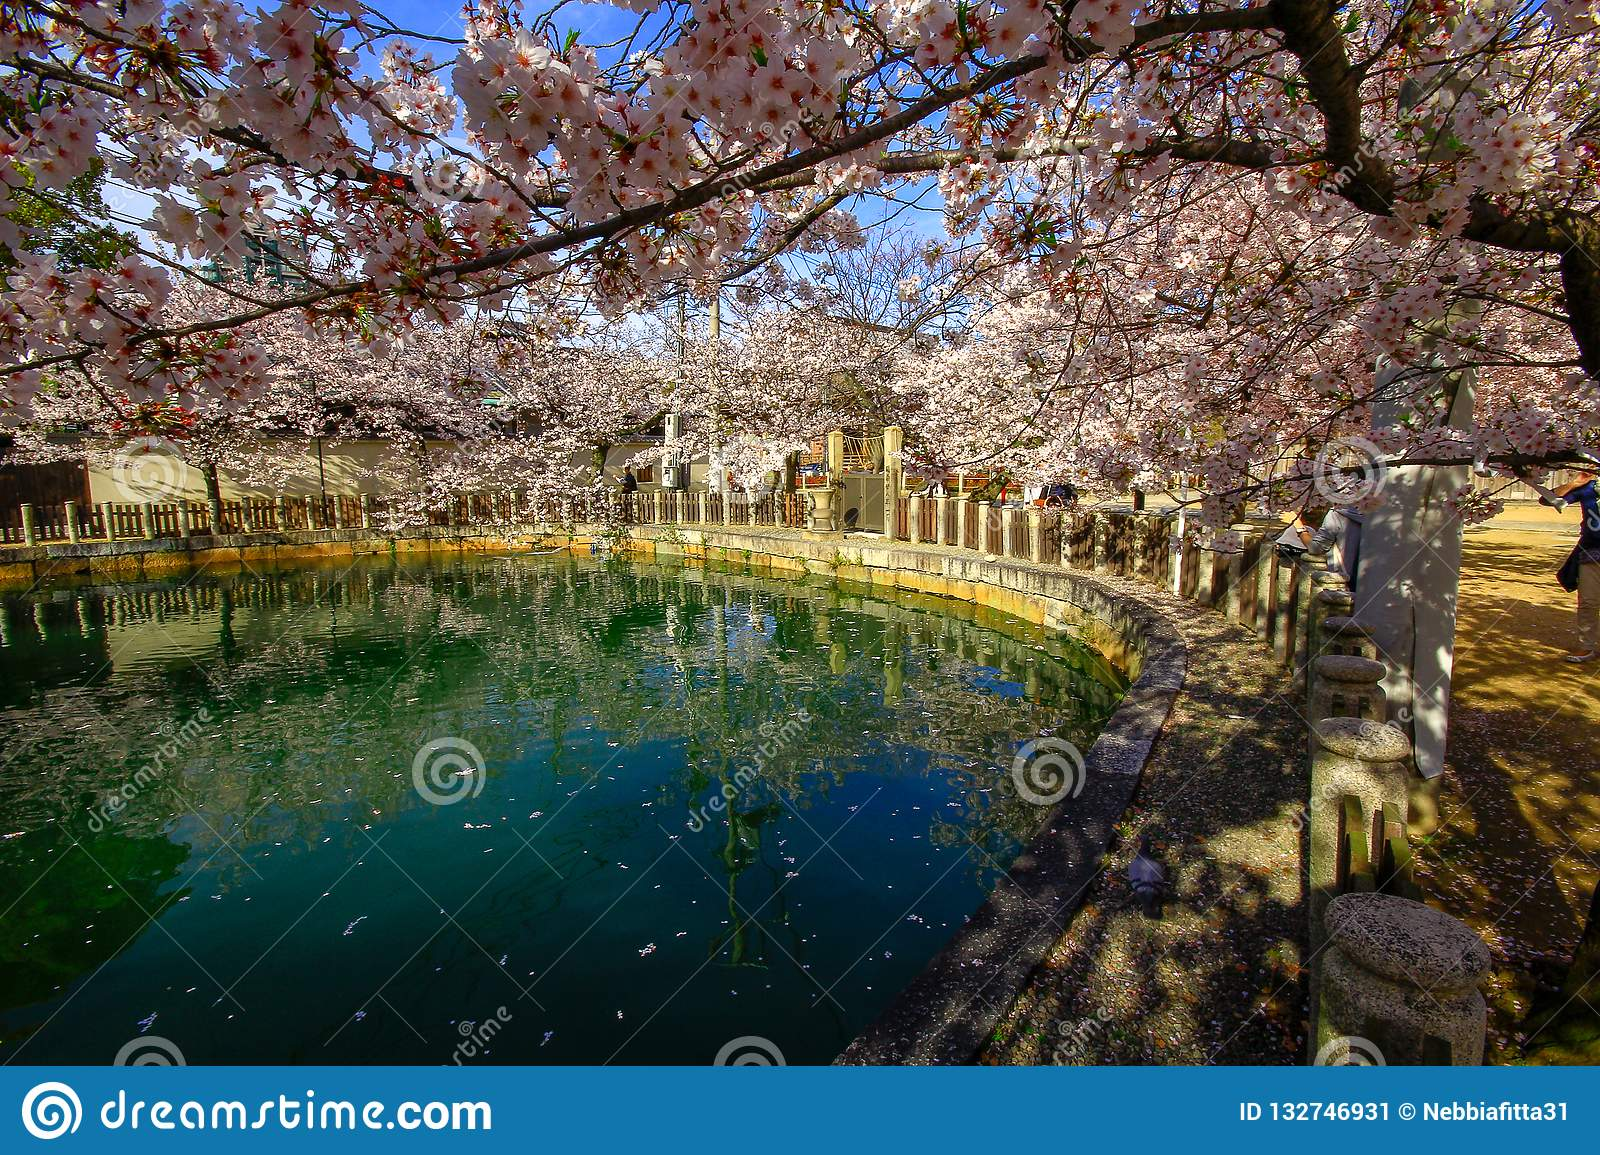 Osaka, Japan. Temple in Osaka in spring, blooming season, cherry blossoms.